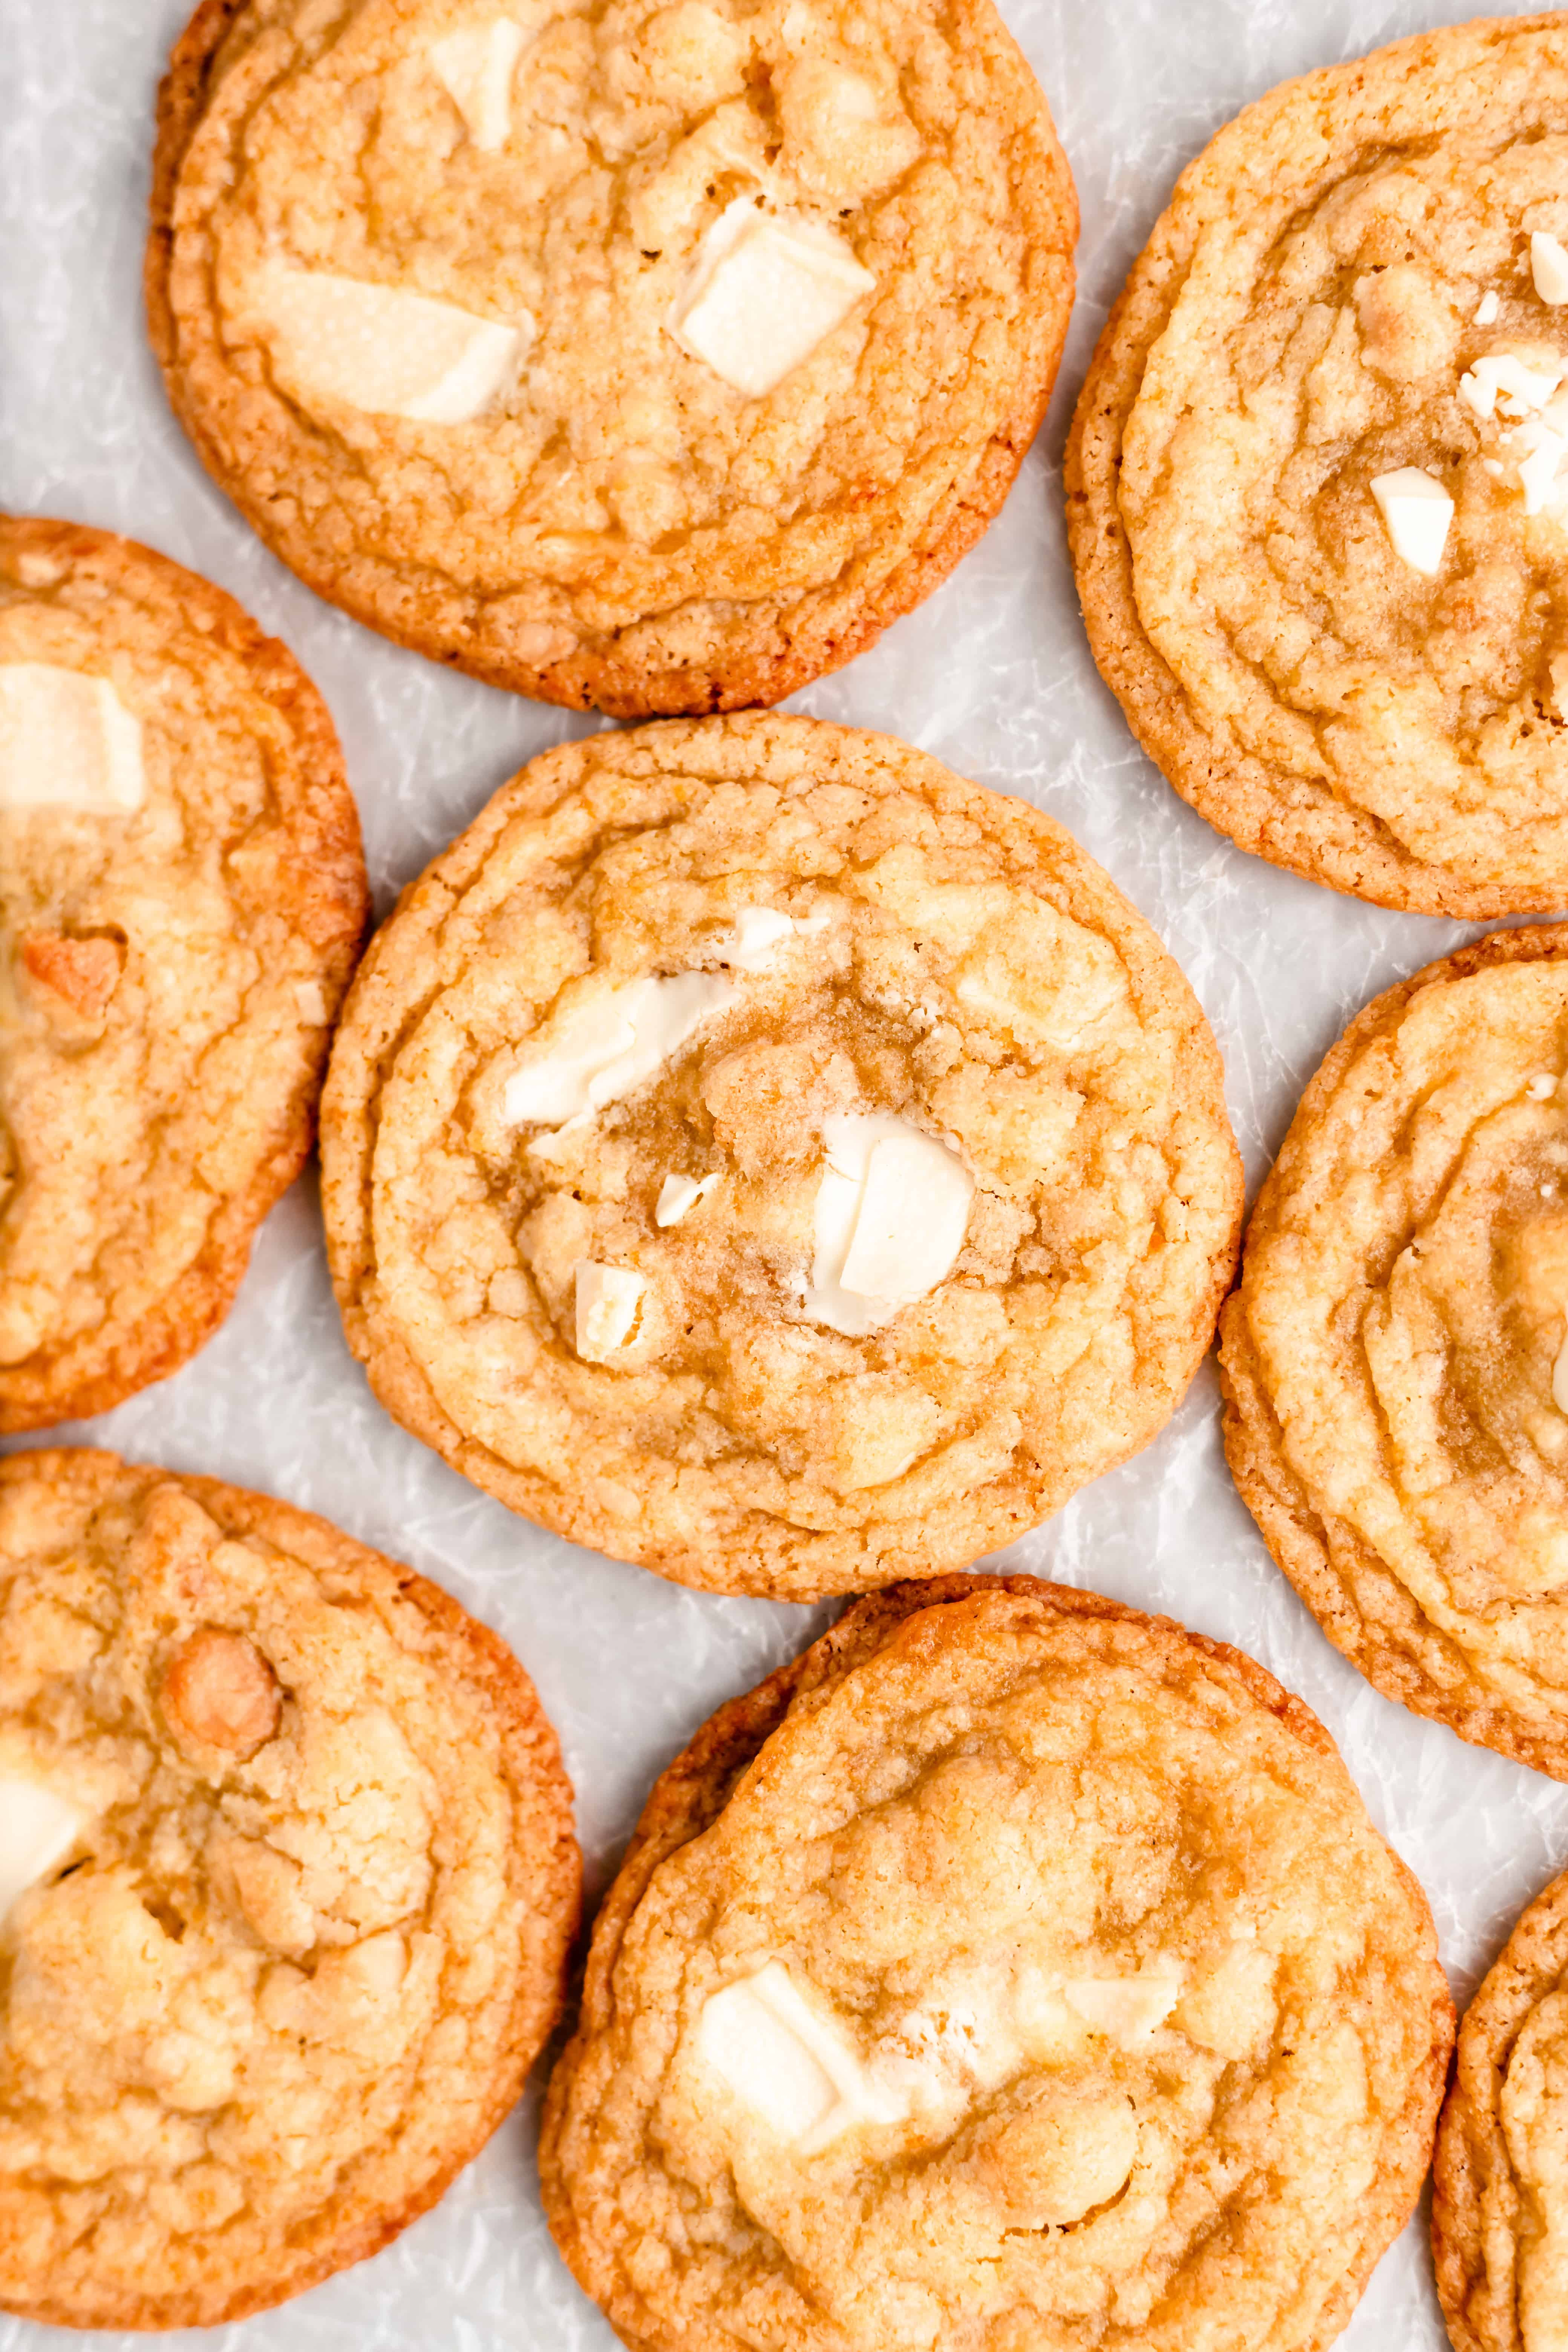 These White Chocolate Orange Macadamia Nut Cookies are crisp on the edges with soft and chewy centers. Loaded with chunks of white chocolate, roasted macadamia nuts, and bursting with fresh orange flavor, these cookies will be a new favorite!